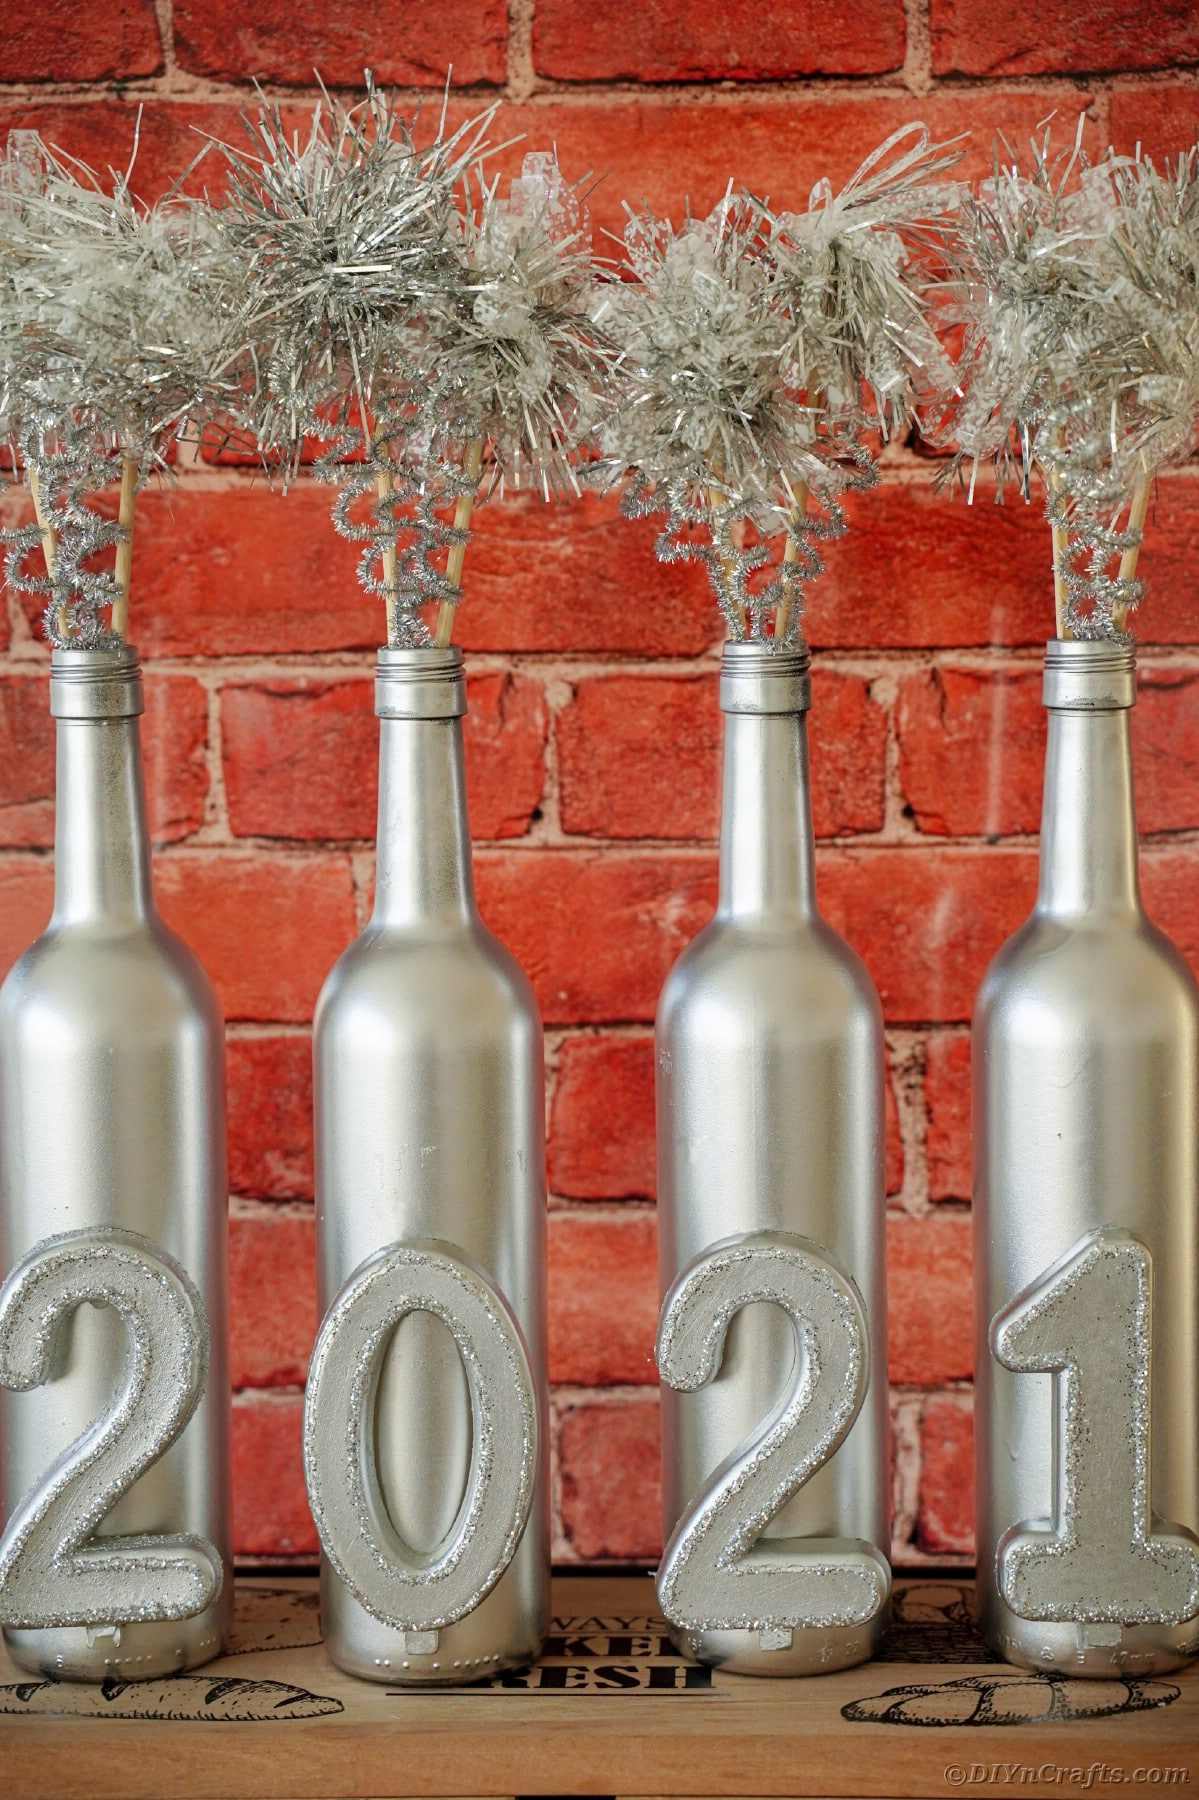 Silver wine bottles by red brick